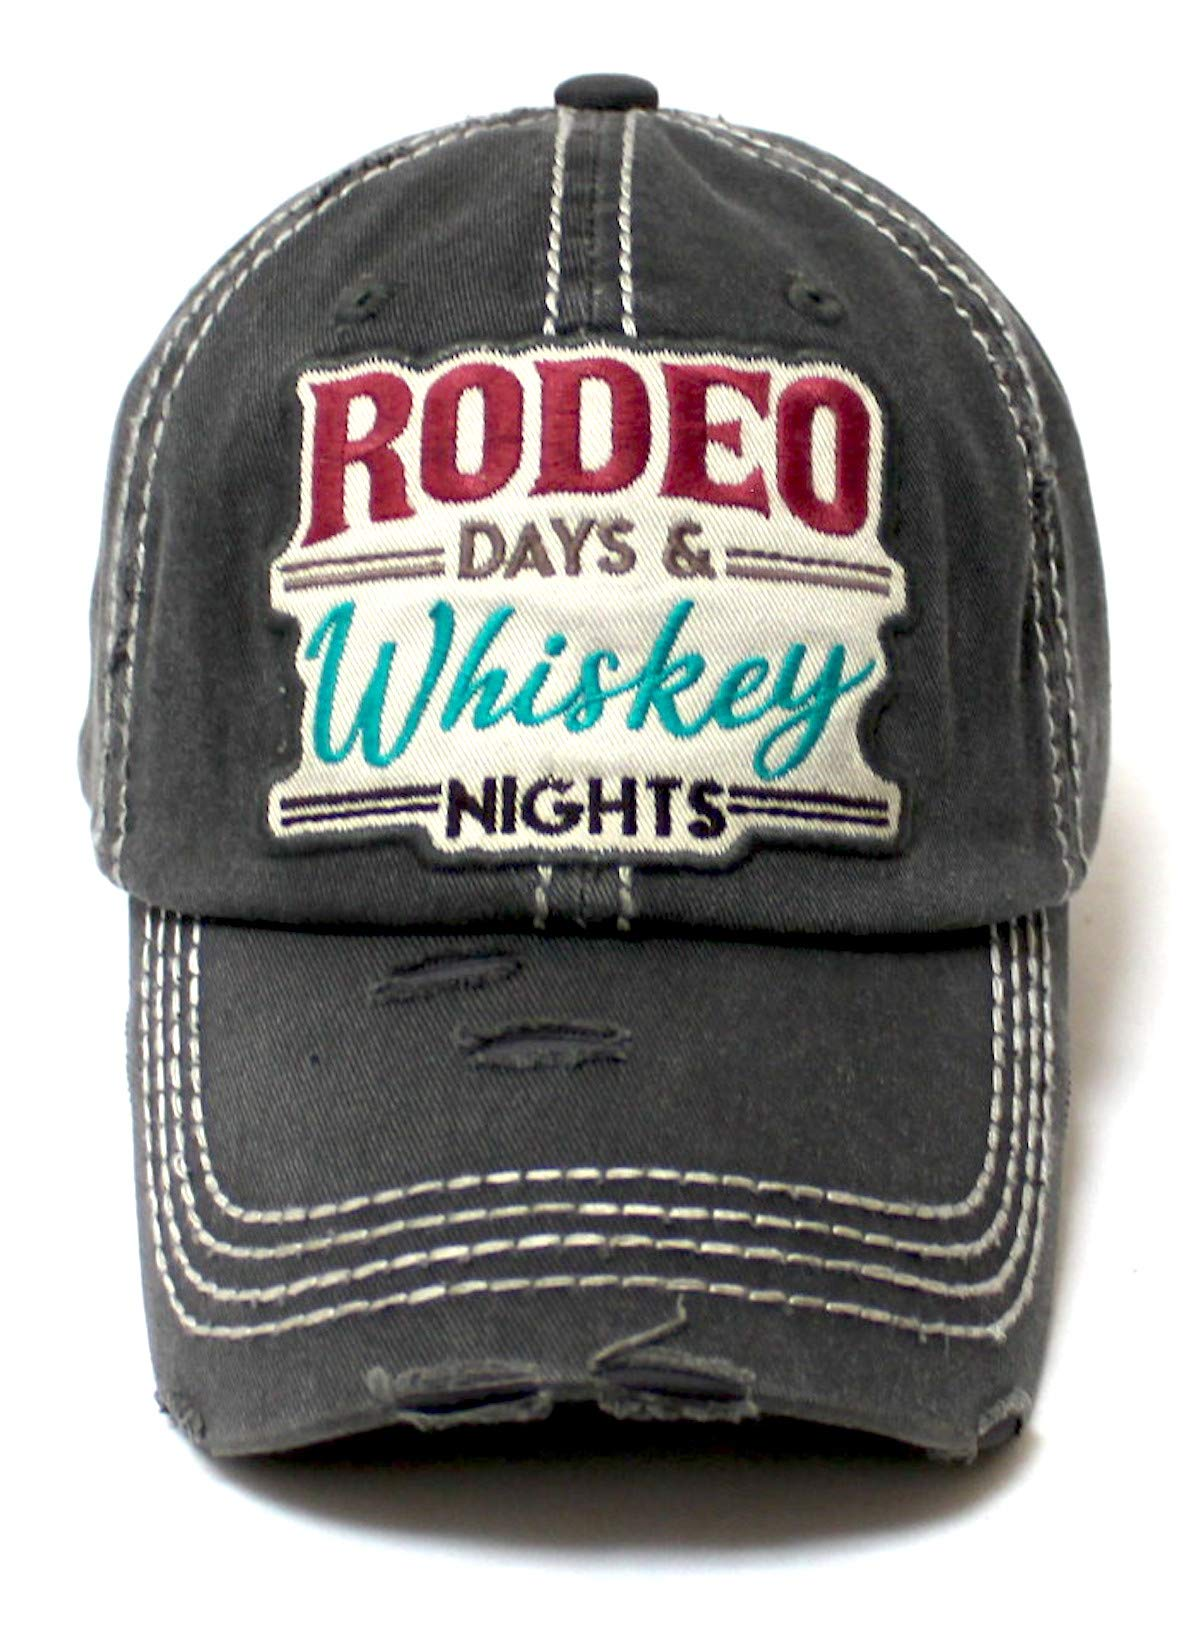 Rodeo Days Whiskey Nights Baseball Cap - Distressed Hats for Women - Summer Style Accessory in Vintage Black - Caps 'N Vintage